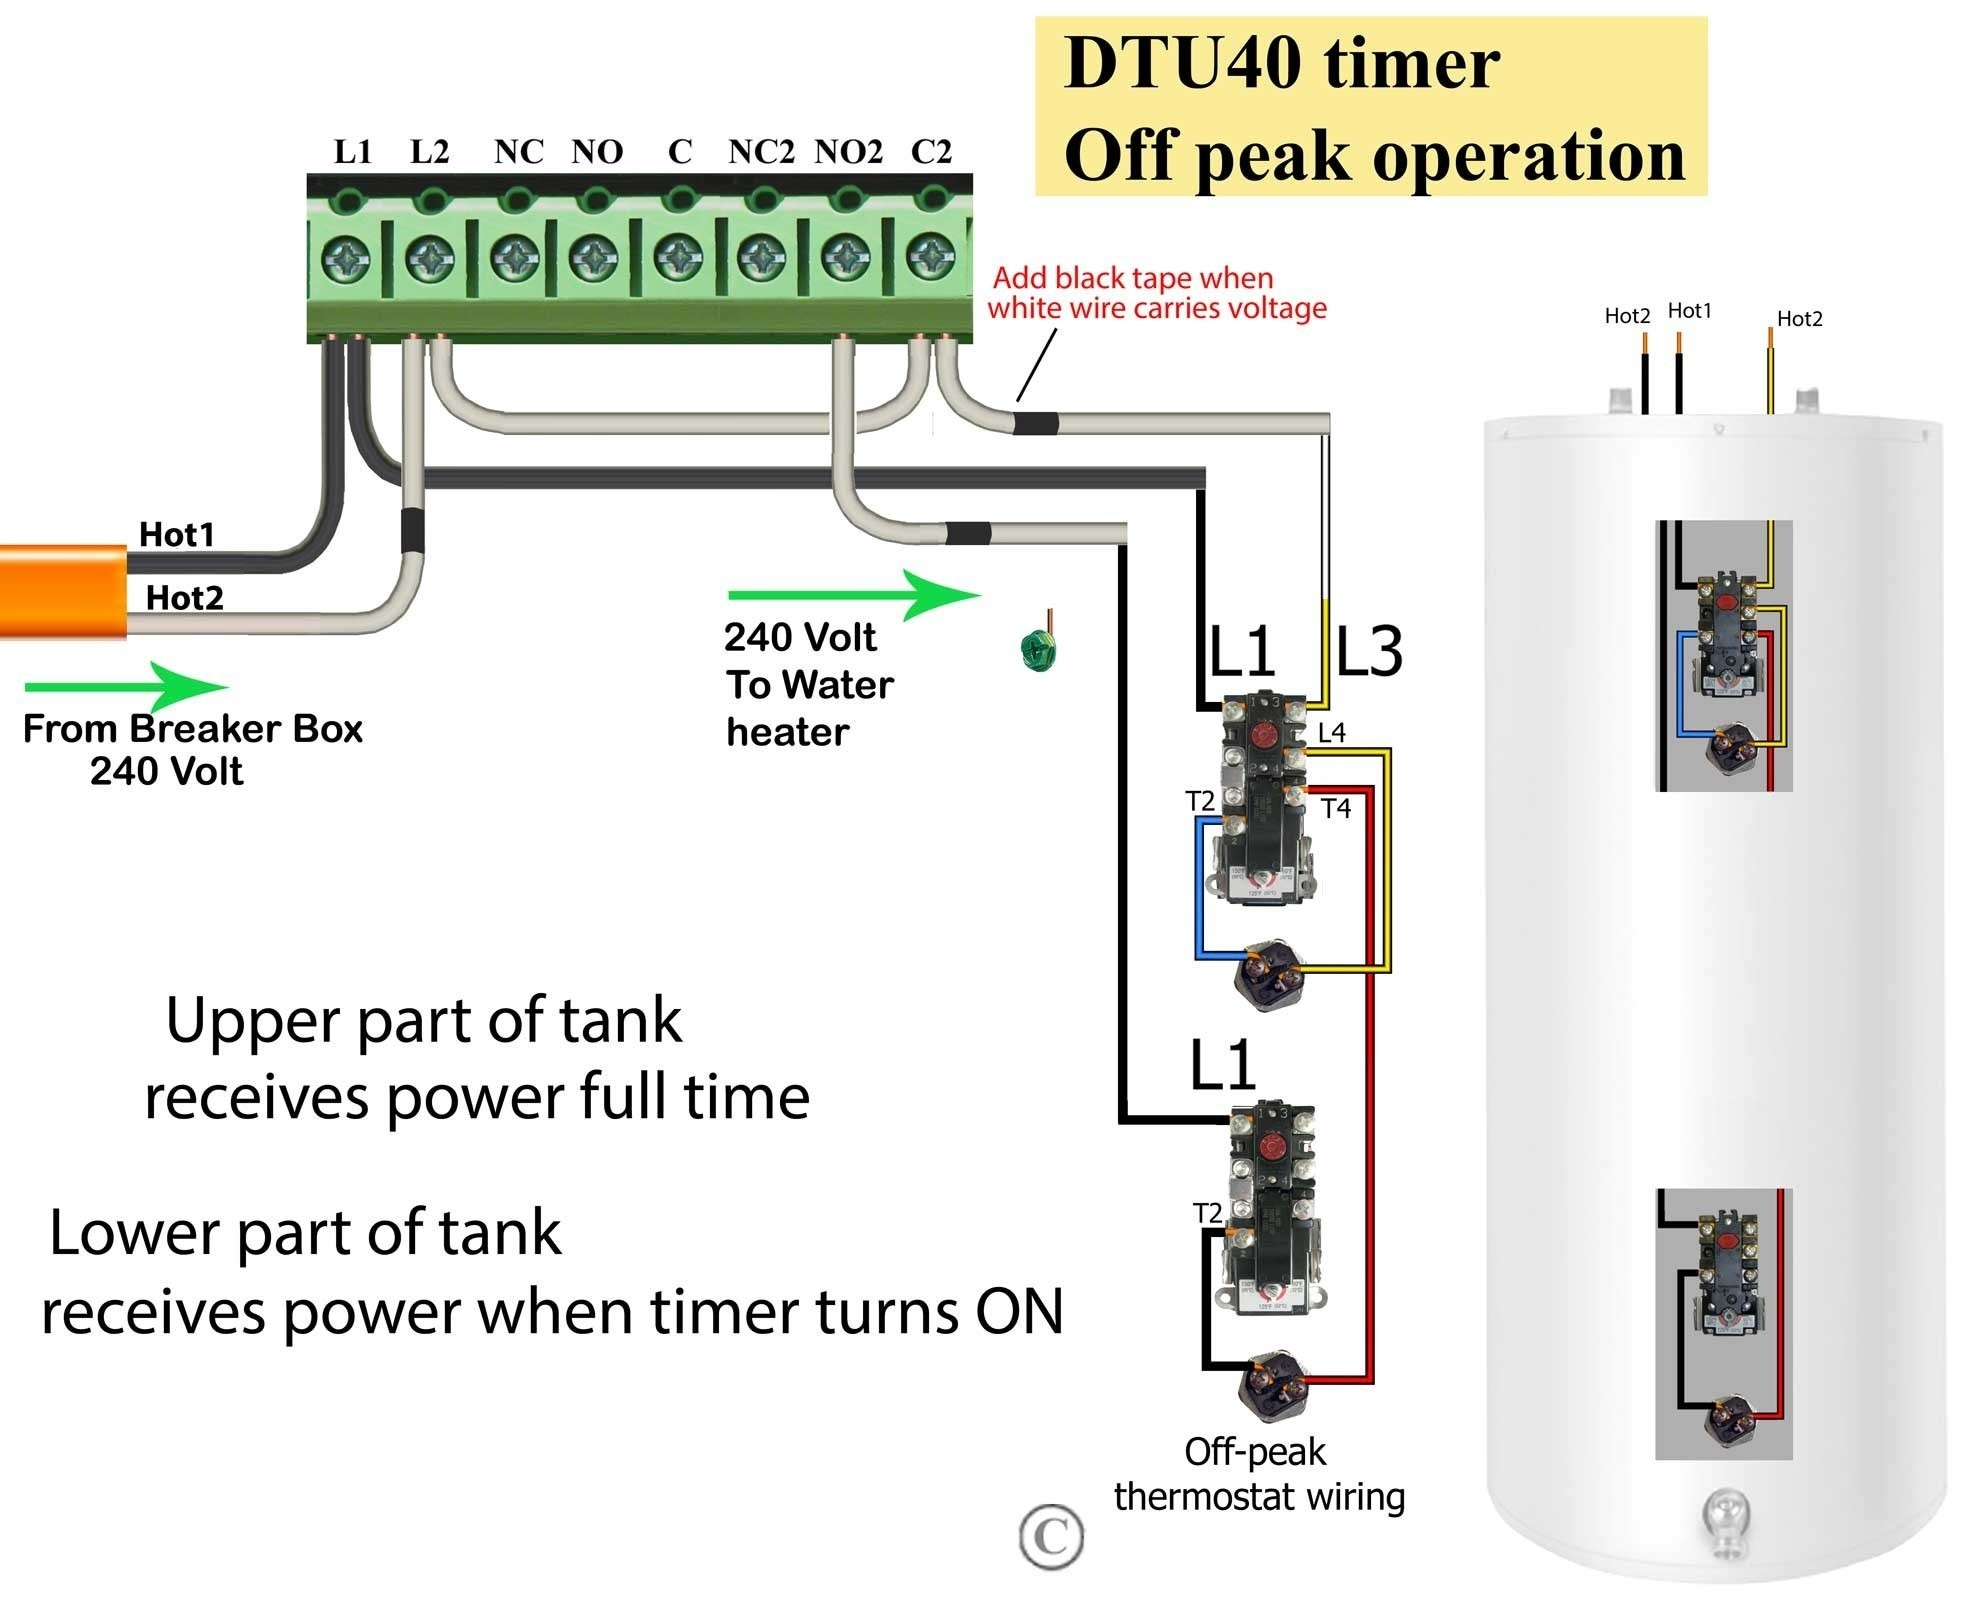 water heater timer wiring diagram Collection-Wiring Diagram Immersion Heater Timer Fresh Wiring Diagram for Water Heater New Hot Water Heater Wiring 15-j